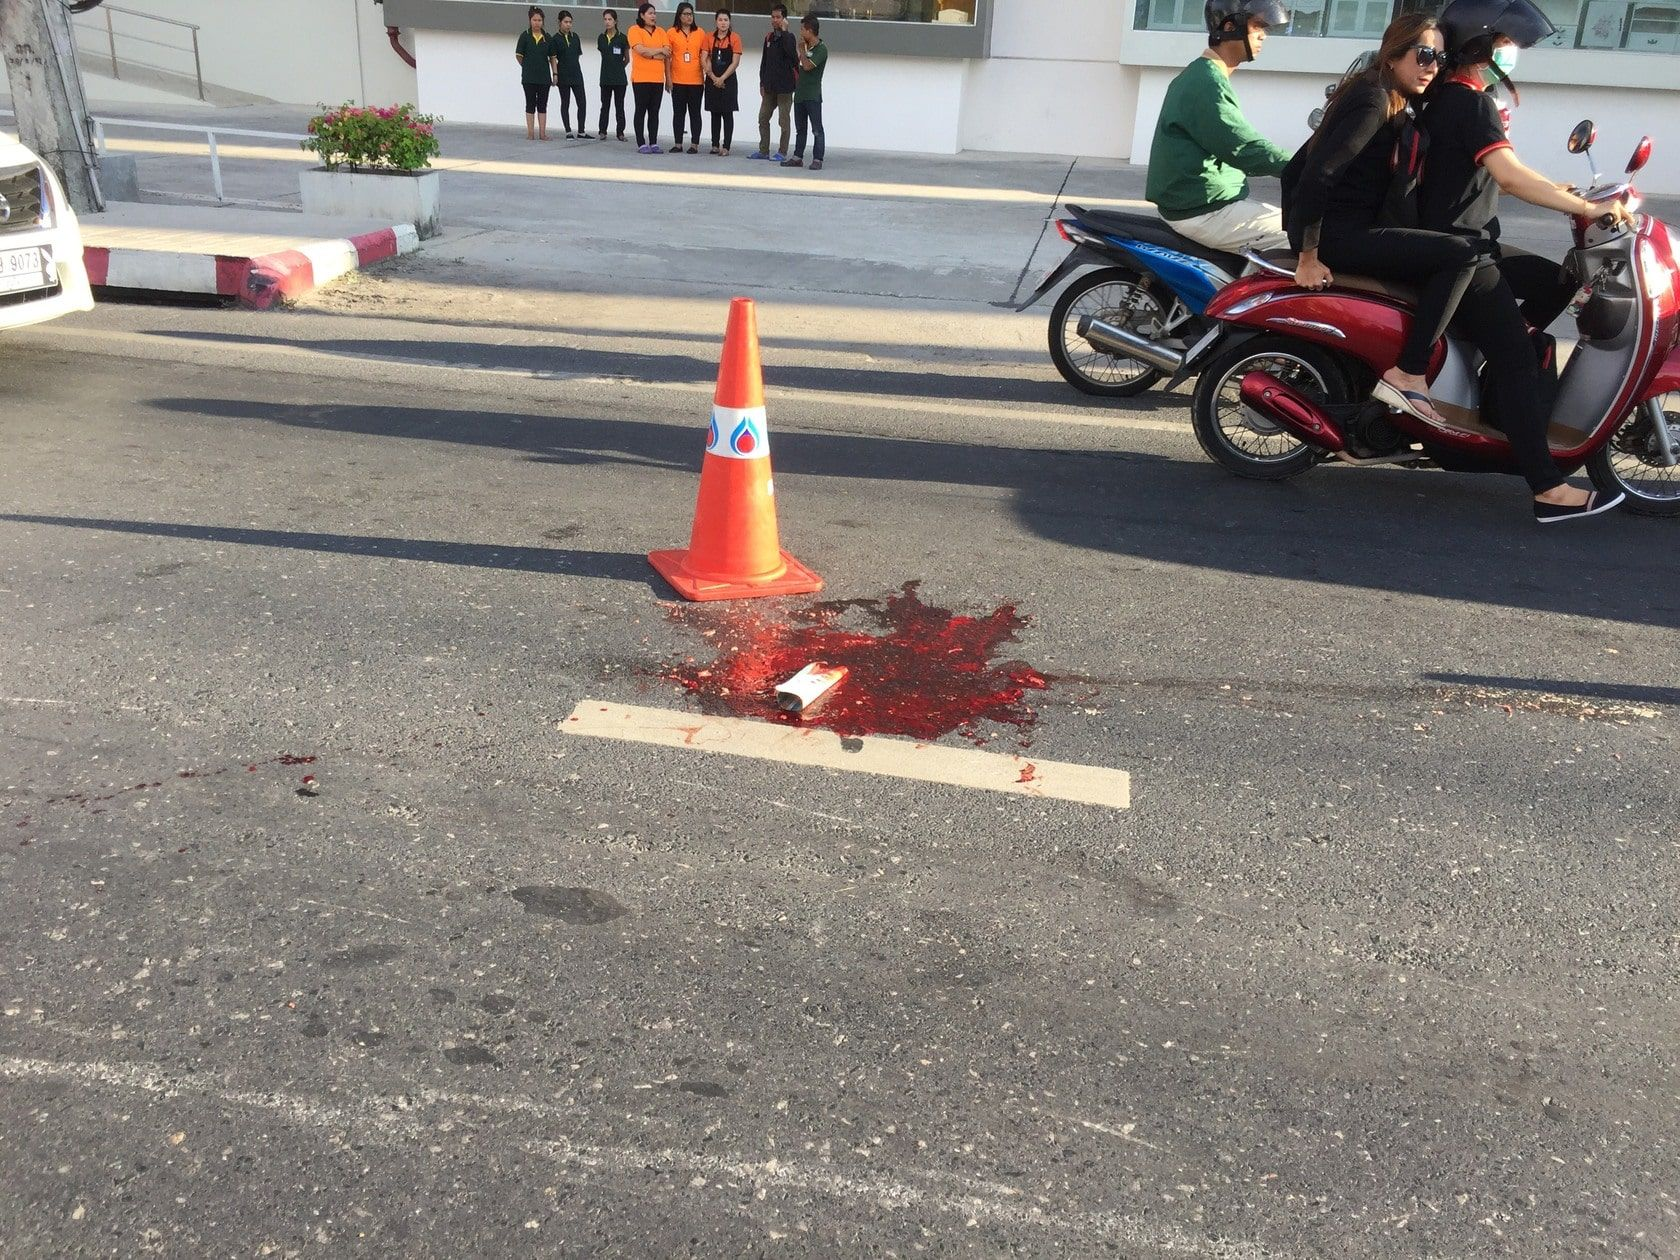 12 year old motorcycle rider killed in Wichit after head crushed by tour bus | The Thaiger